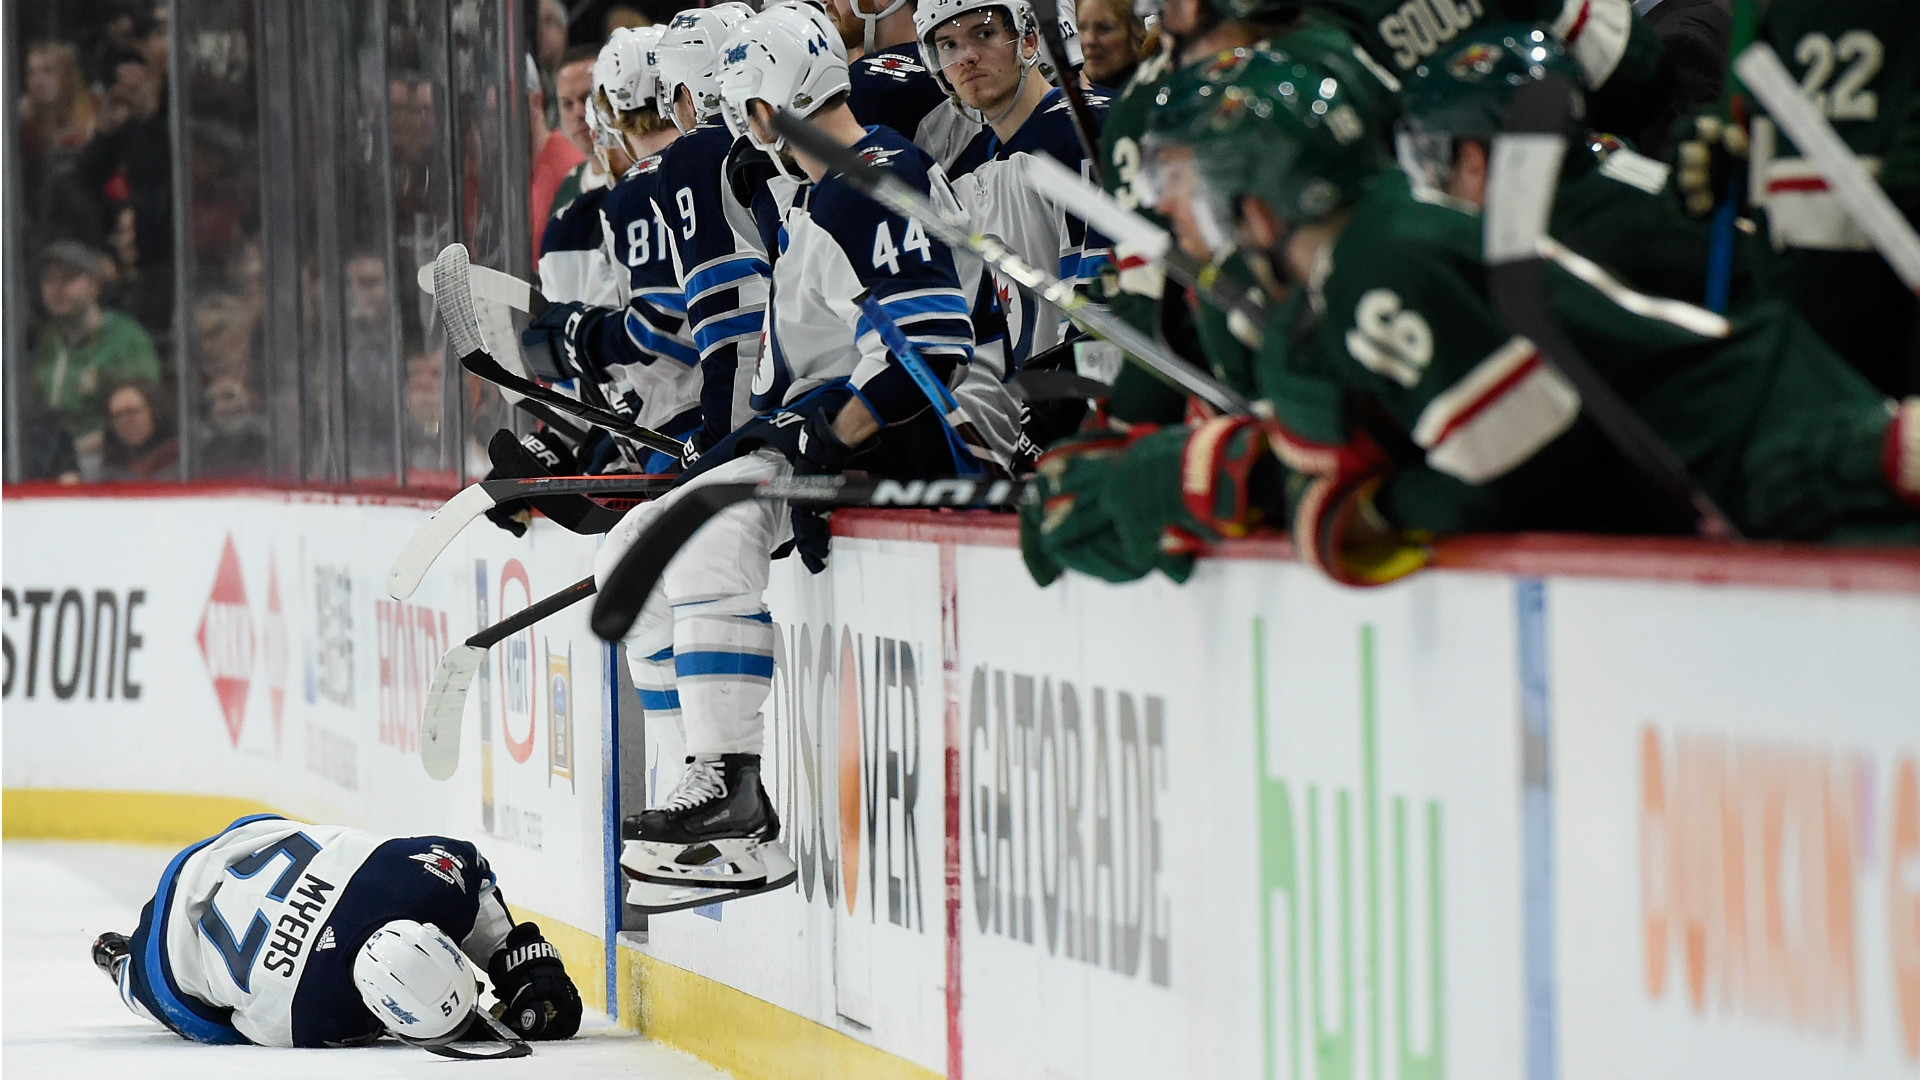 Cross-check lands Winnipeg's Josh Morrissey with one-game suspension